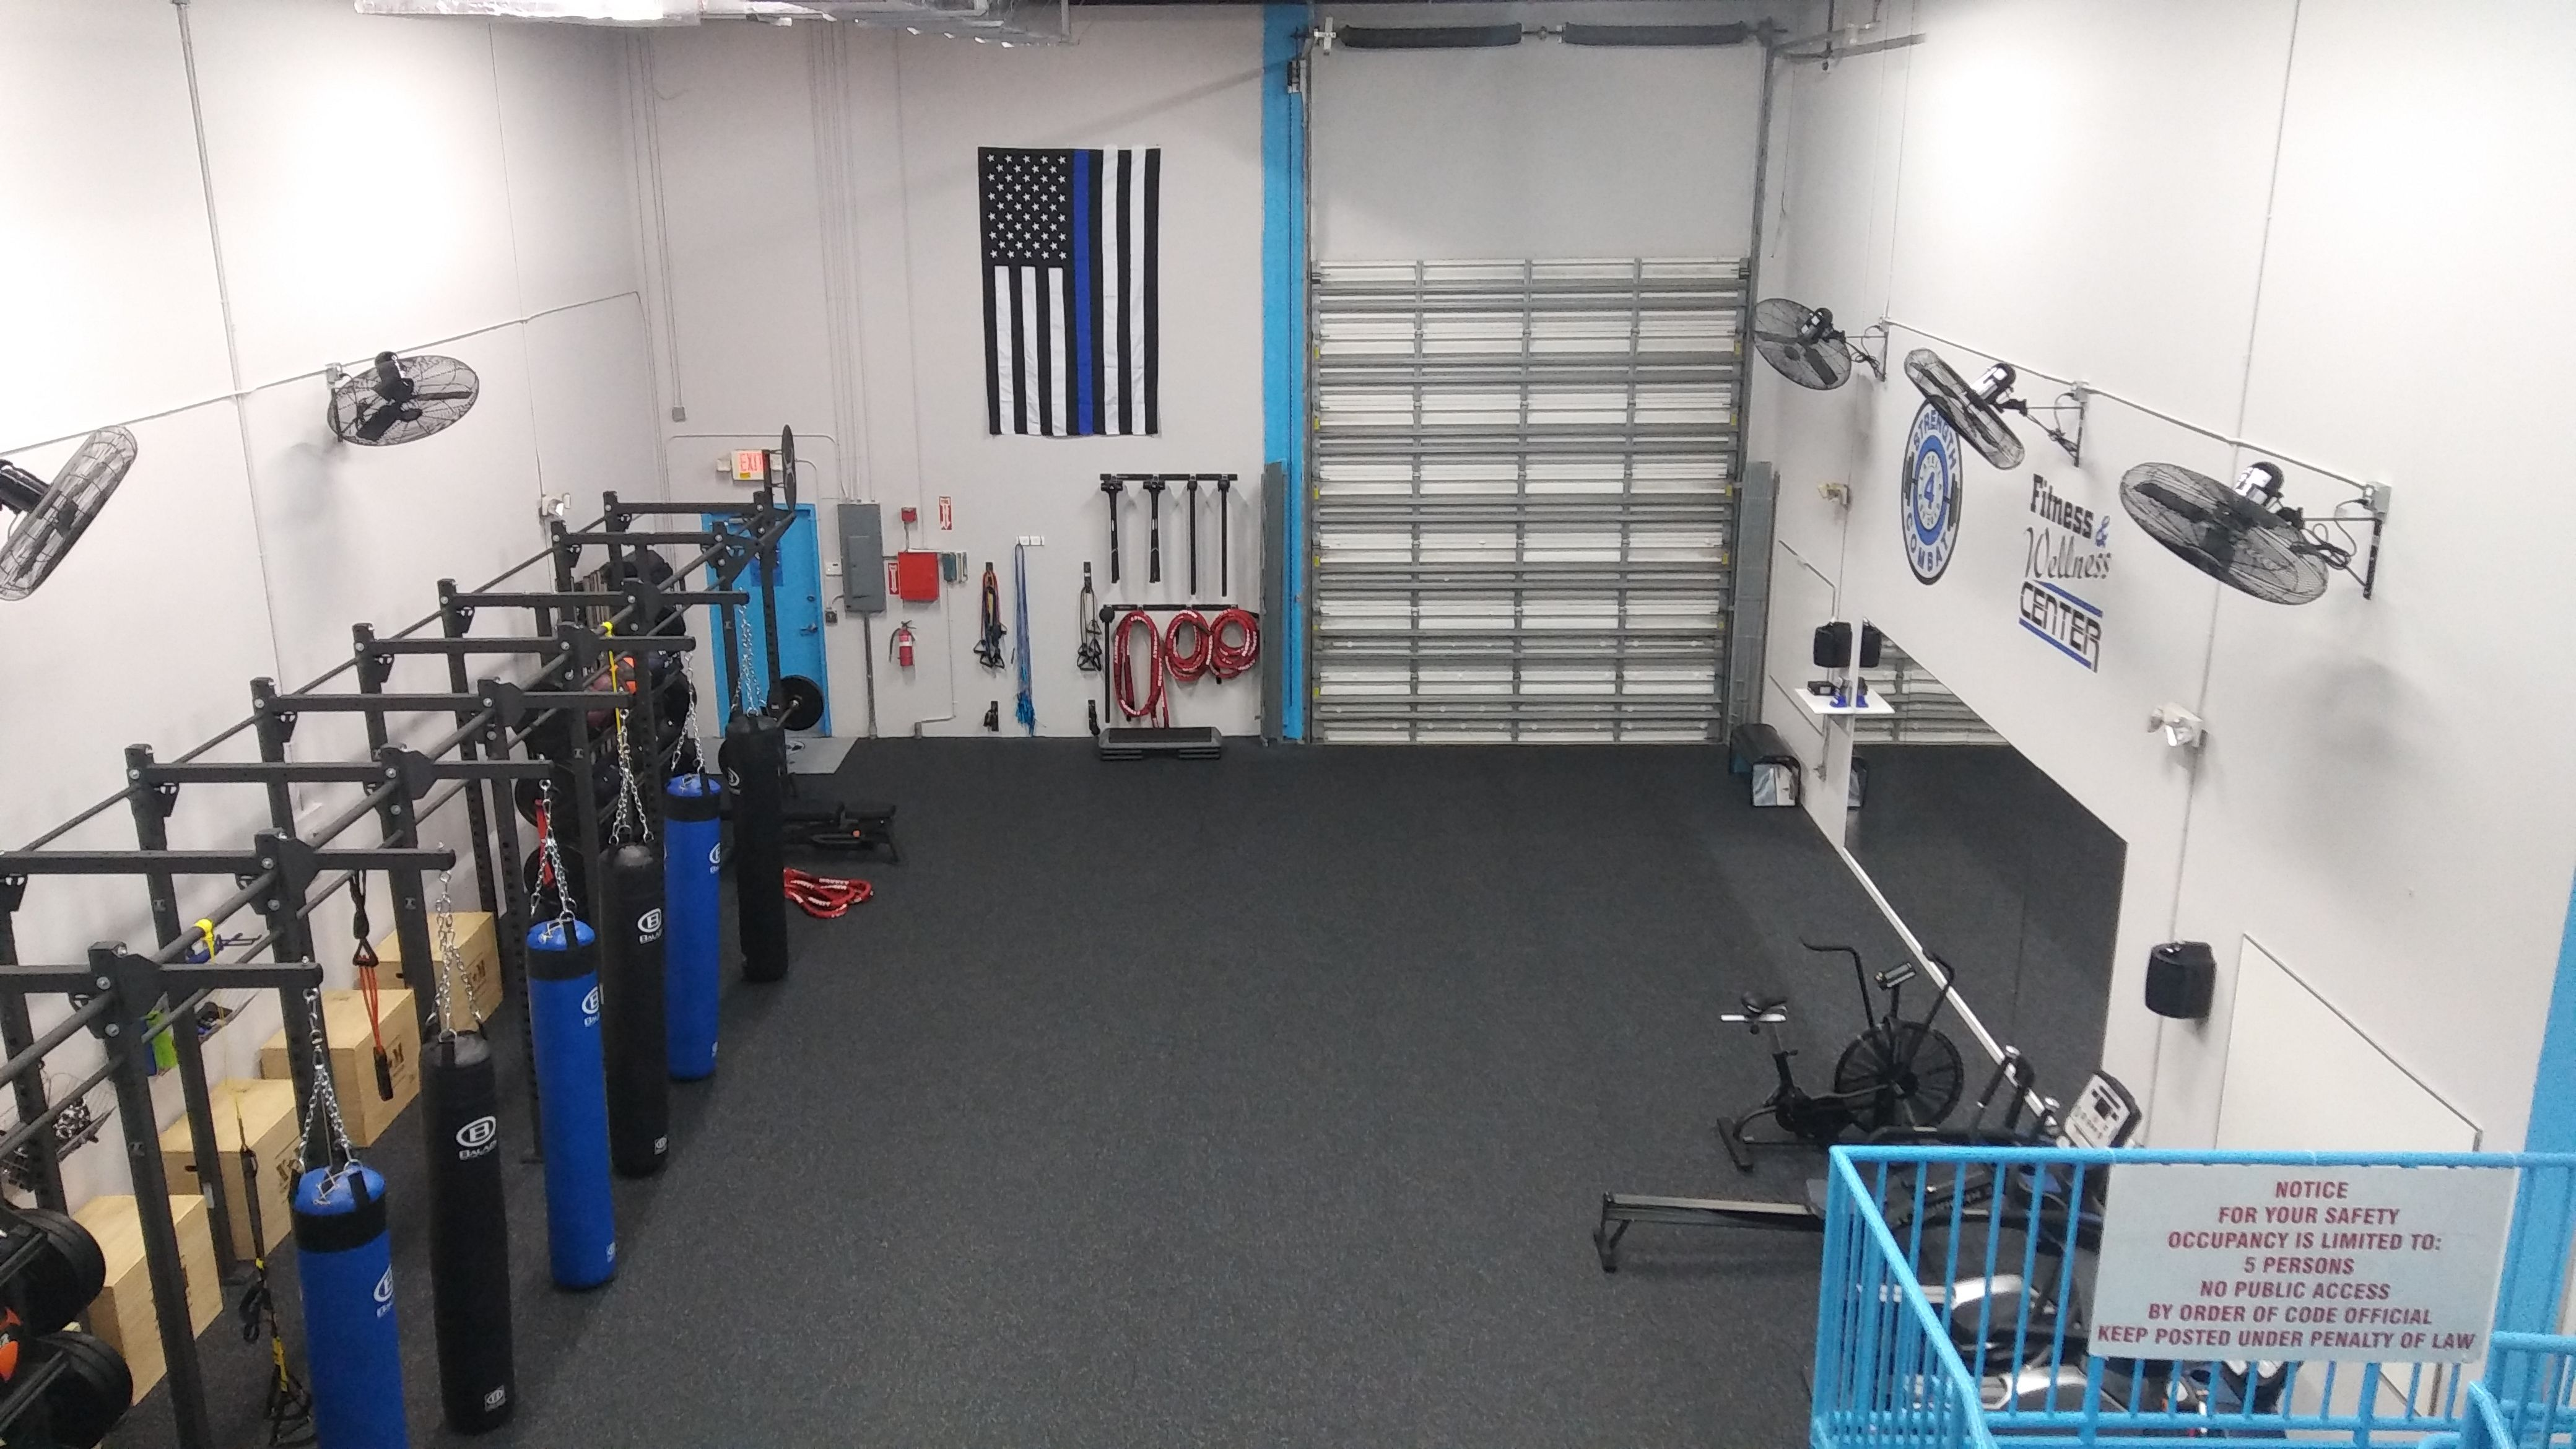 Strength 4 Combat Boynton Beach Fl Click To Rent By The Hour Fitspace4fitpros Getgymspace Findfitnessspace Health Fitness Combat Rent Boynton Beach